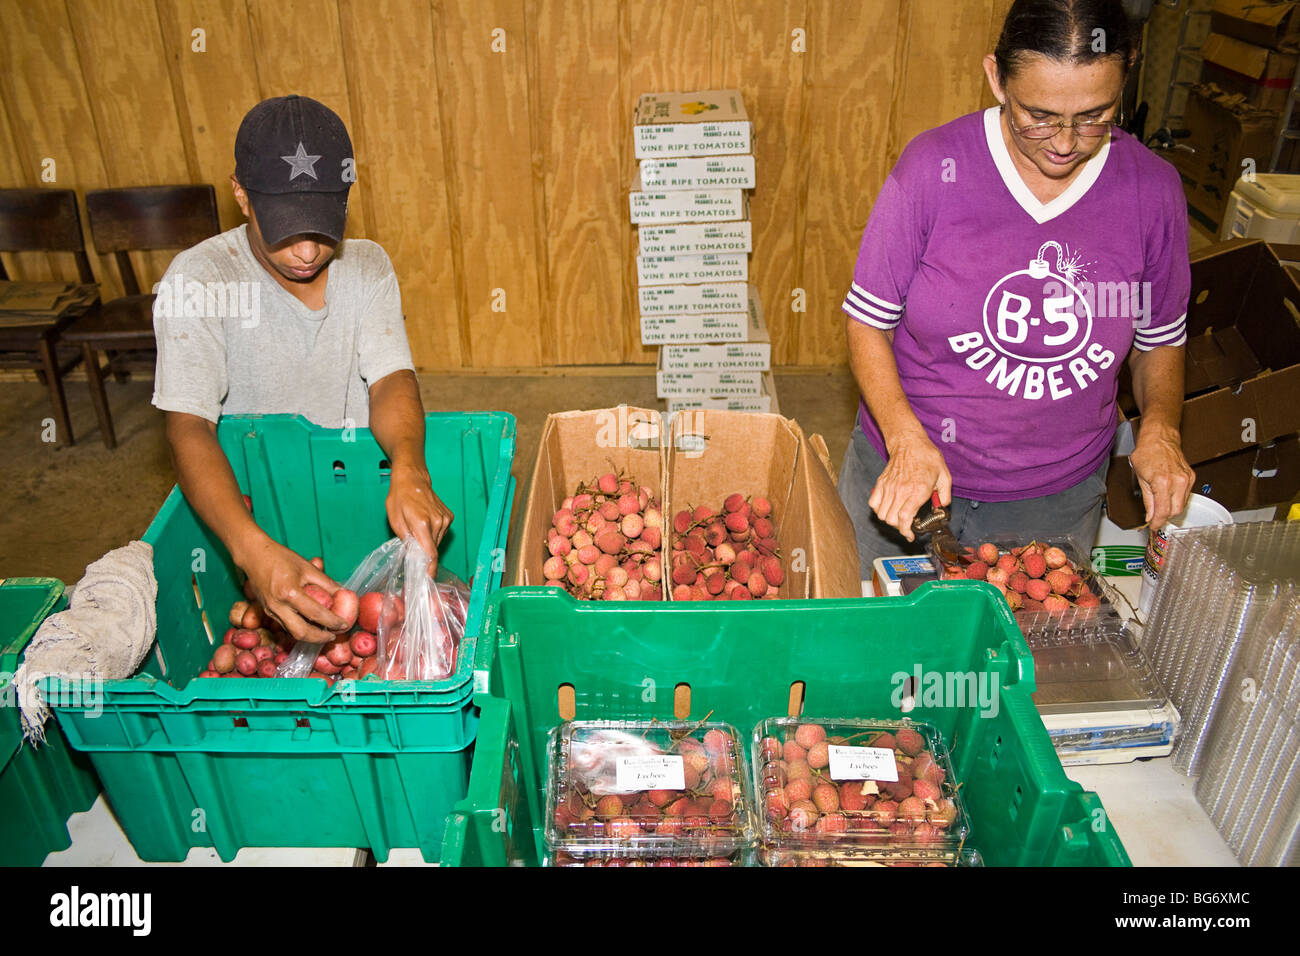 Owner of CSA (community supported agriculture) farm and her worker sort and pack lychees, a tropical fruit, for - Stock Image